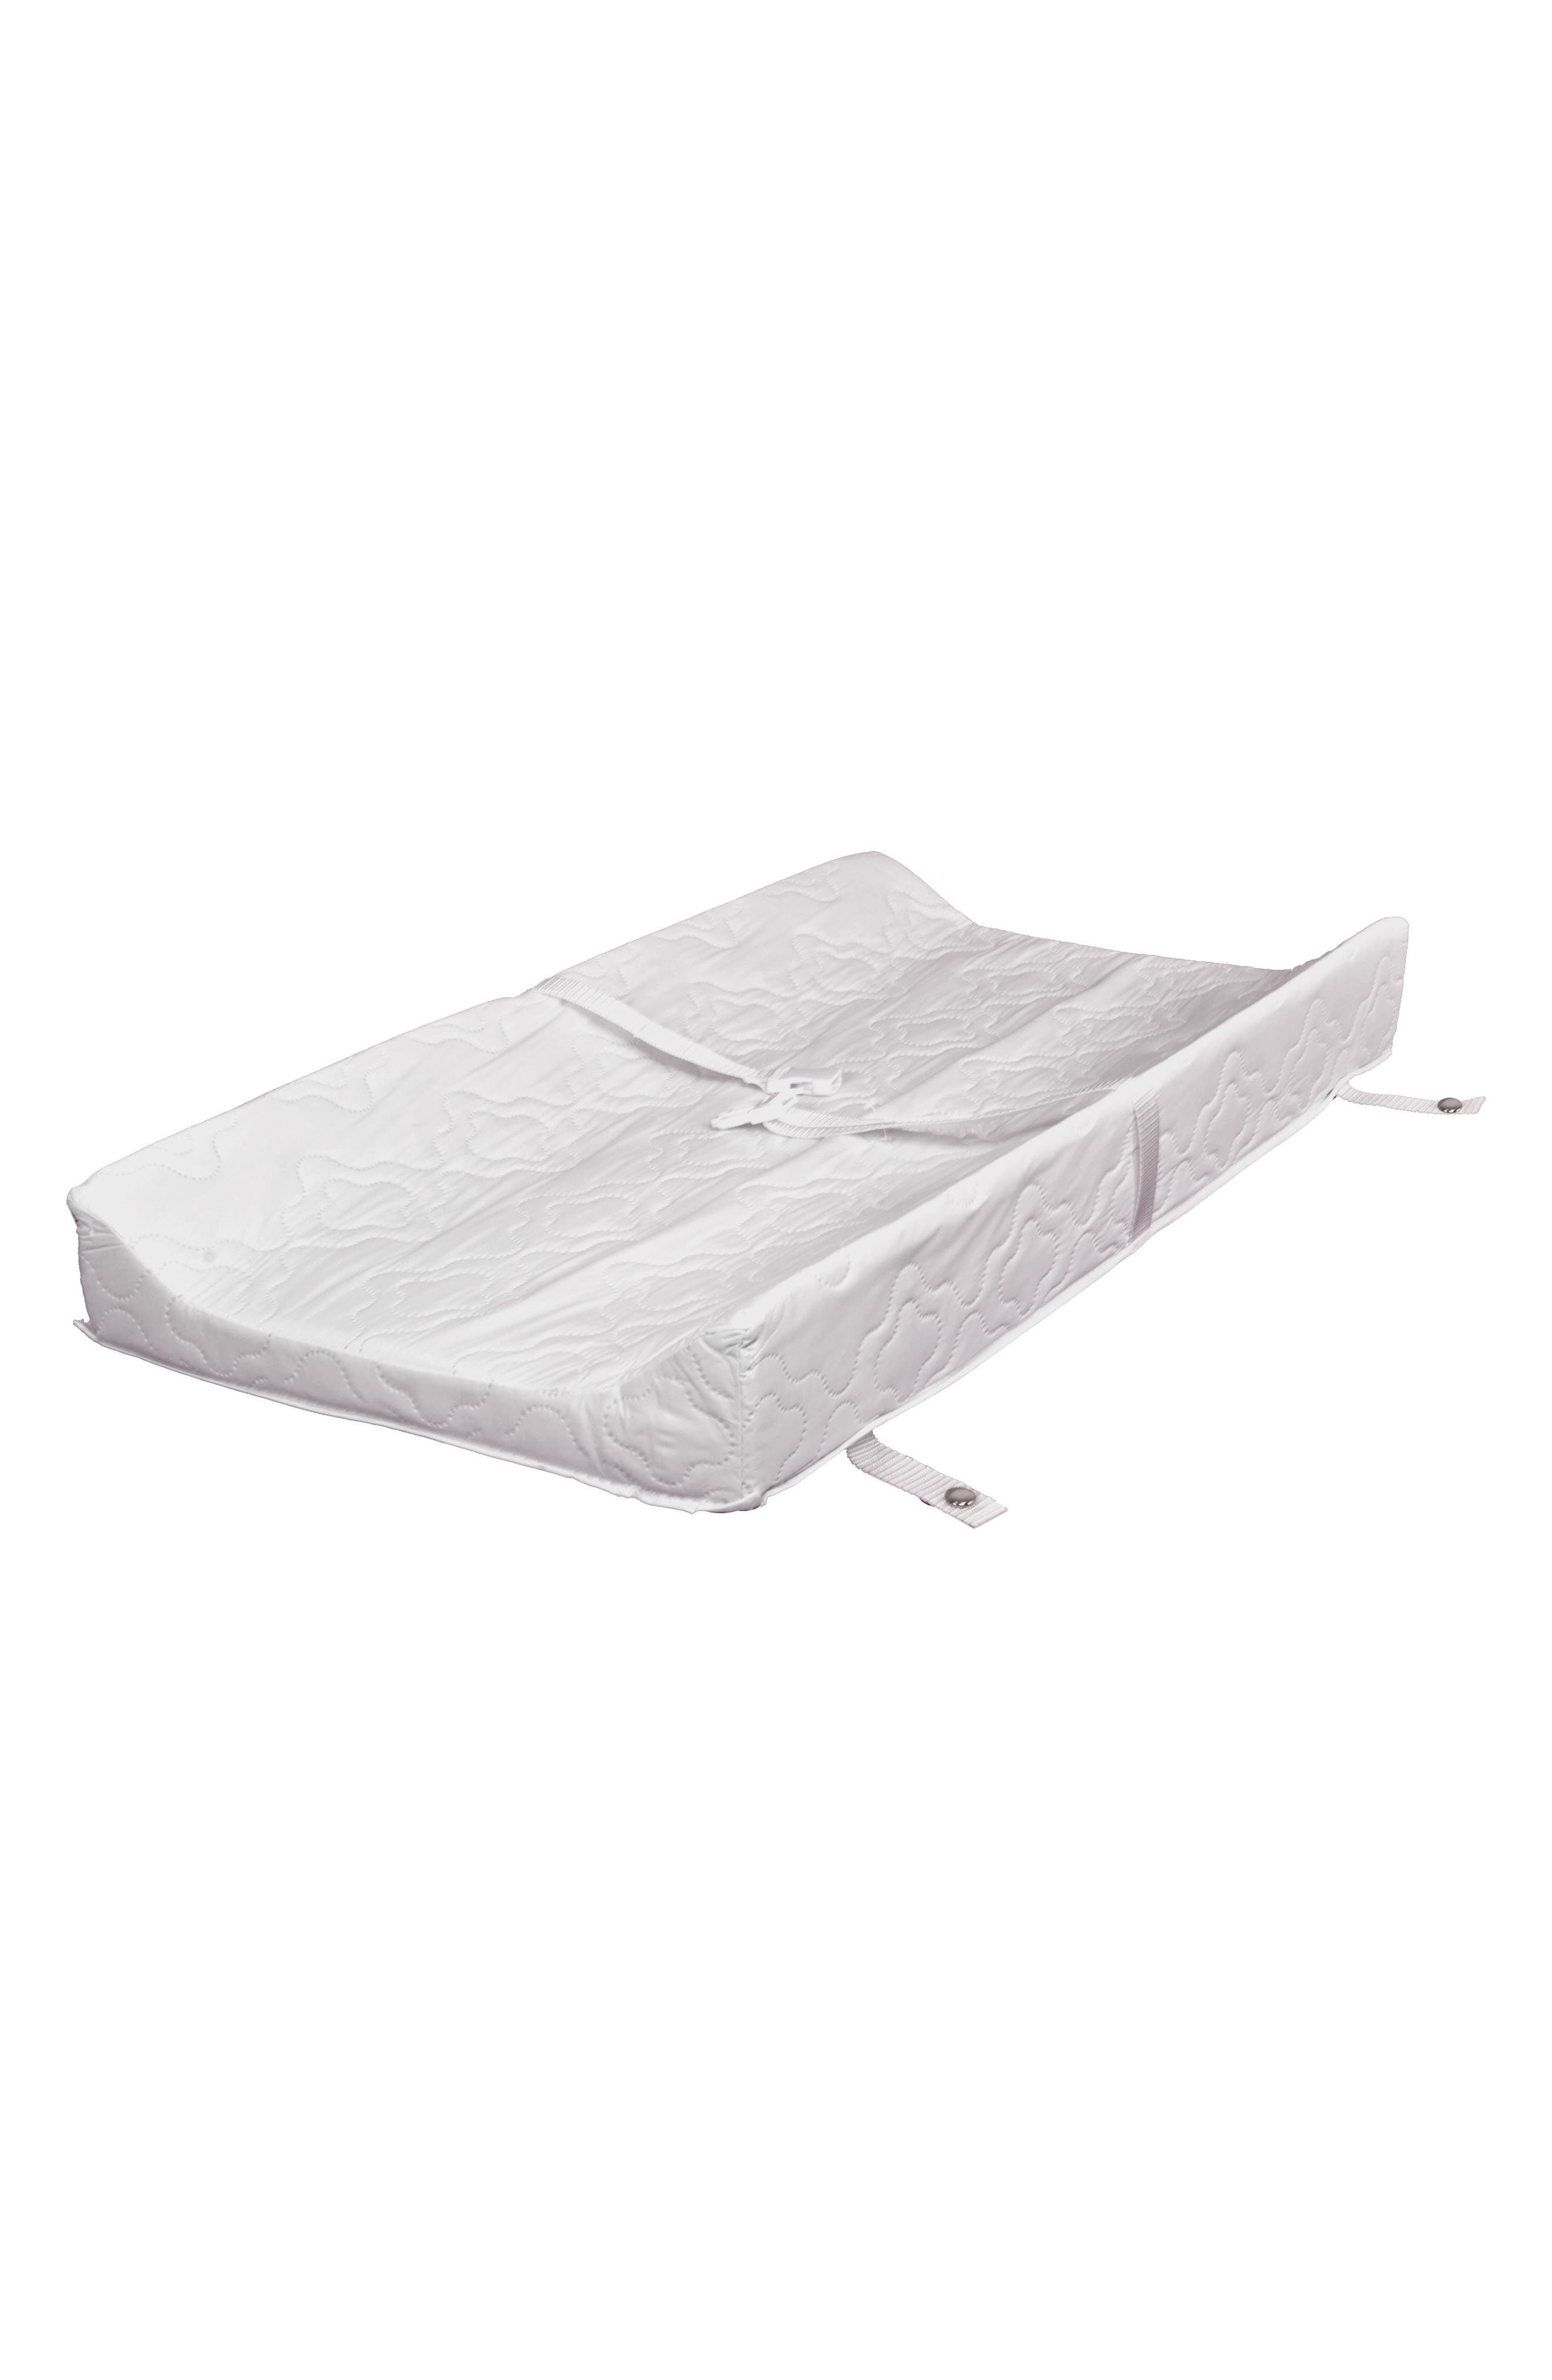 Alternate Image 1 Selected - babyletto Waterproof Contoured Changing Pad for babyletto Changers/Dressers